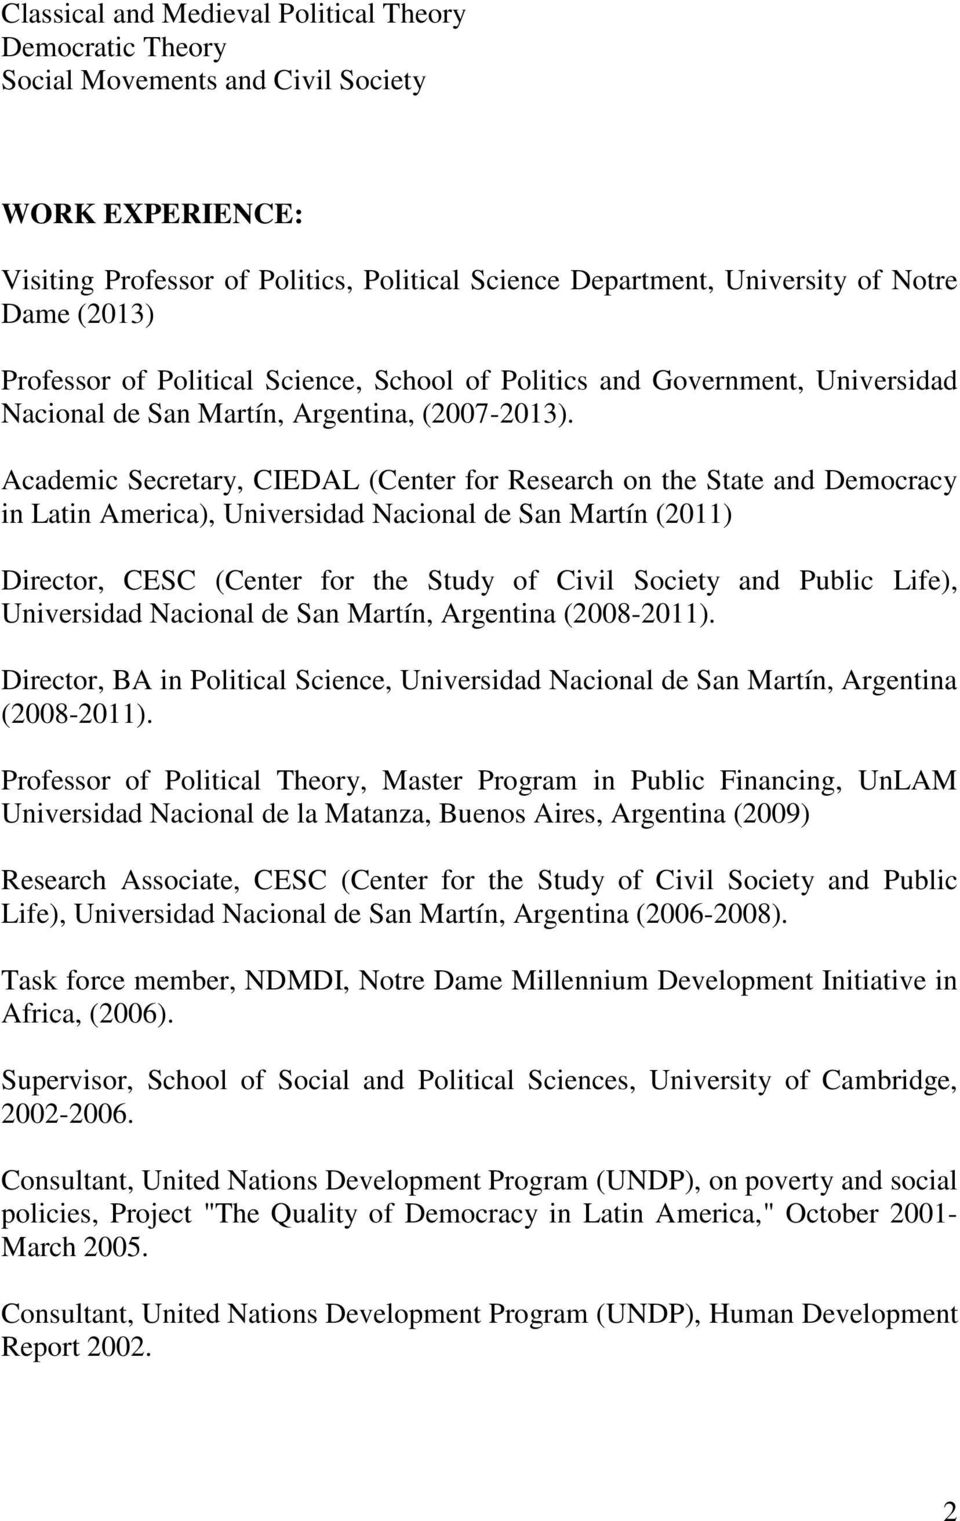 Academic Secretary, CIEDAL (Center for Research on the State and Democracy in Latin America), Universidad Nacional de San Martín (2011) Director, CESC (Center for the Study of Civil Society and